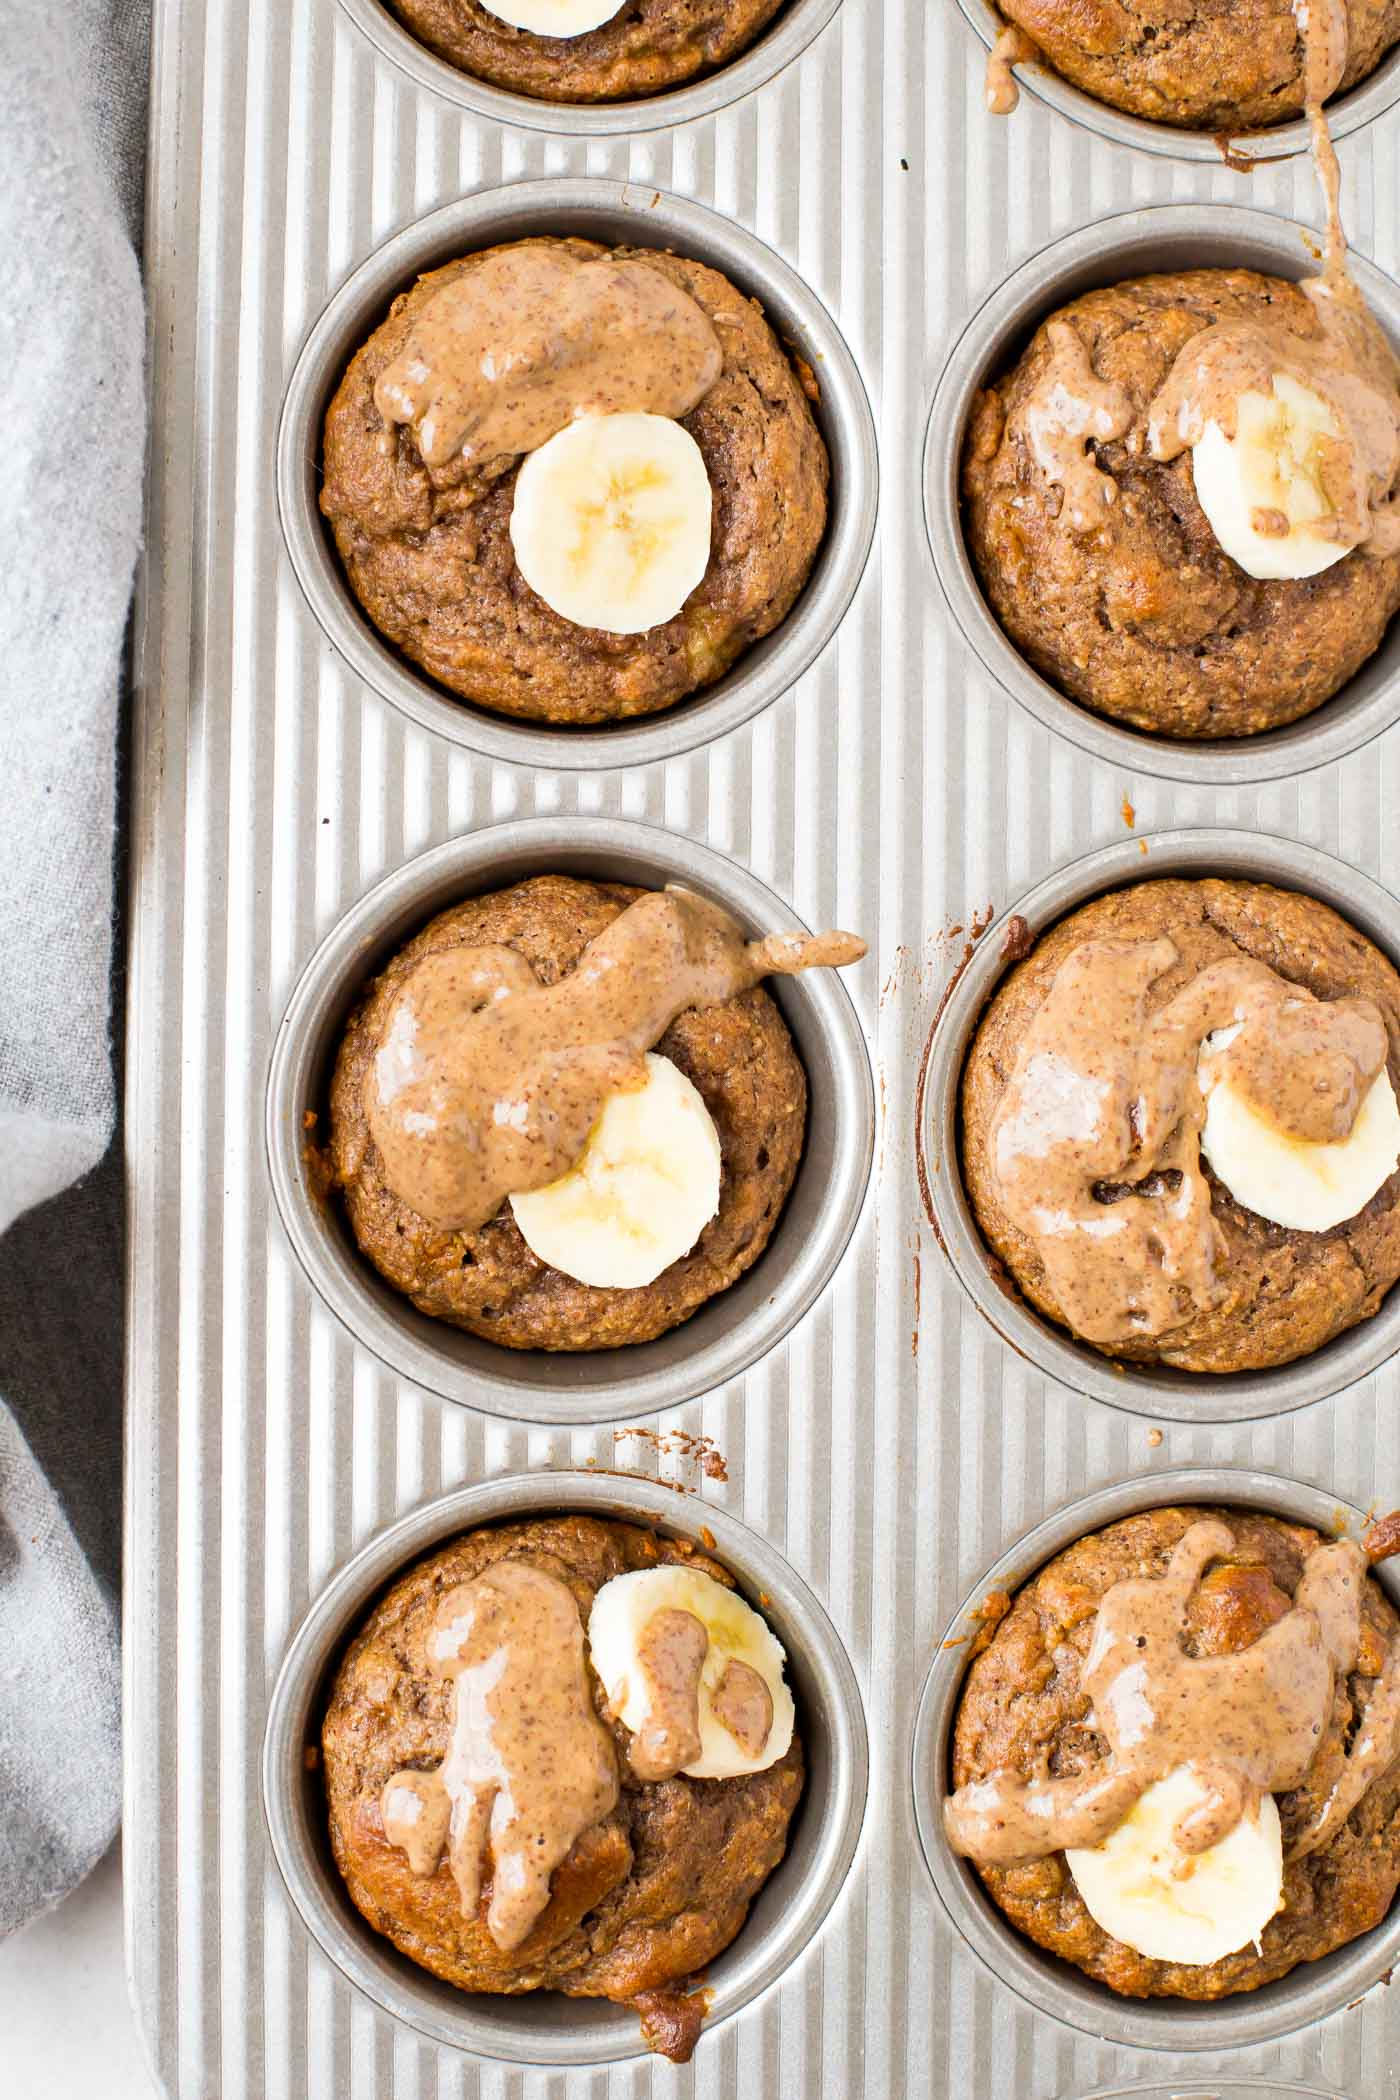 Banana Protein Muffins drizzled with almond butter in muffin tin pan